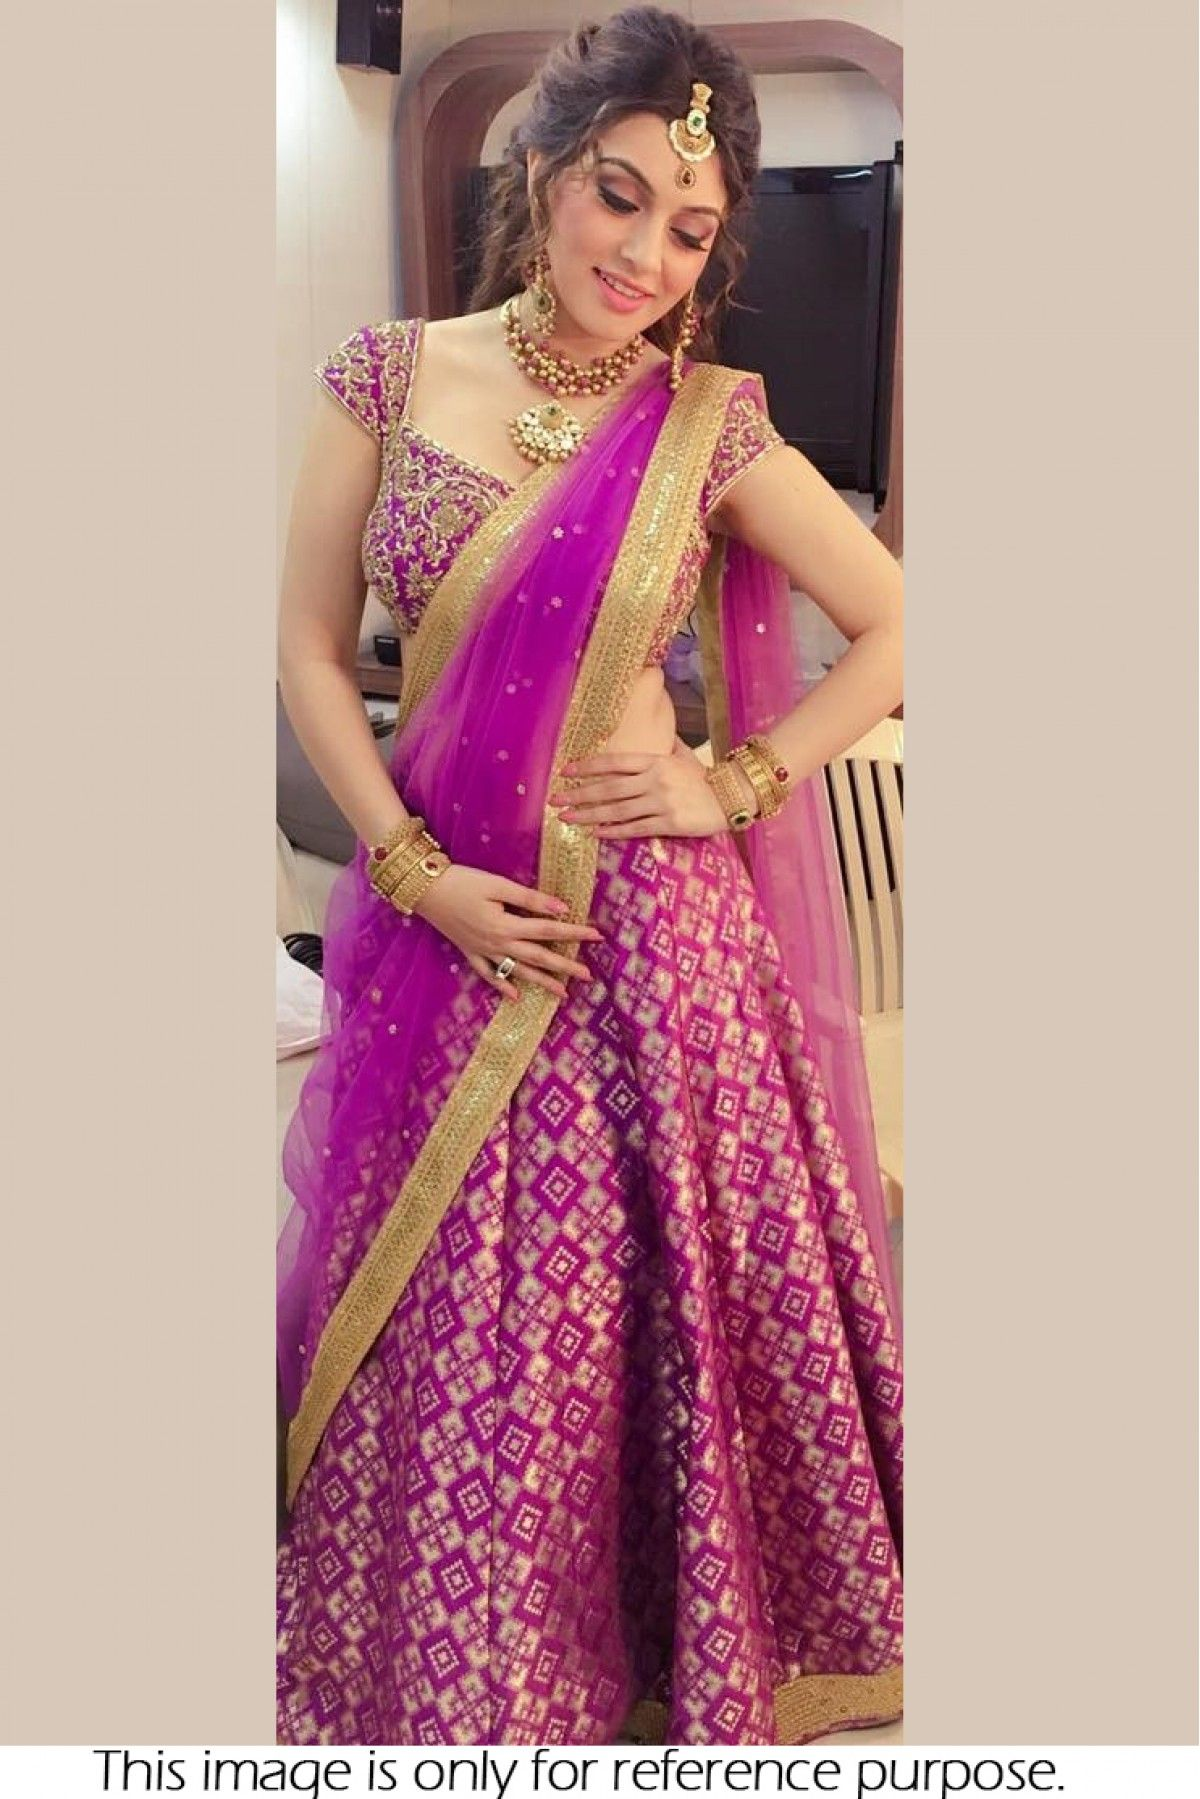 afe00acfe Pink Colour Brocade Georgette Fabric Party Wear Lehenga Choli Comes with  matching blouse. This Lehenga Choli Is crafted with Embroidery This Lehenga  Choli ...